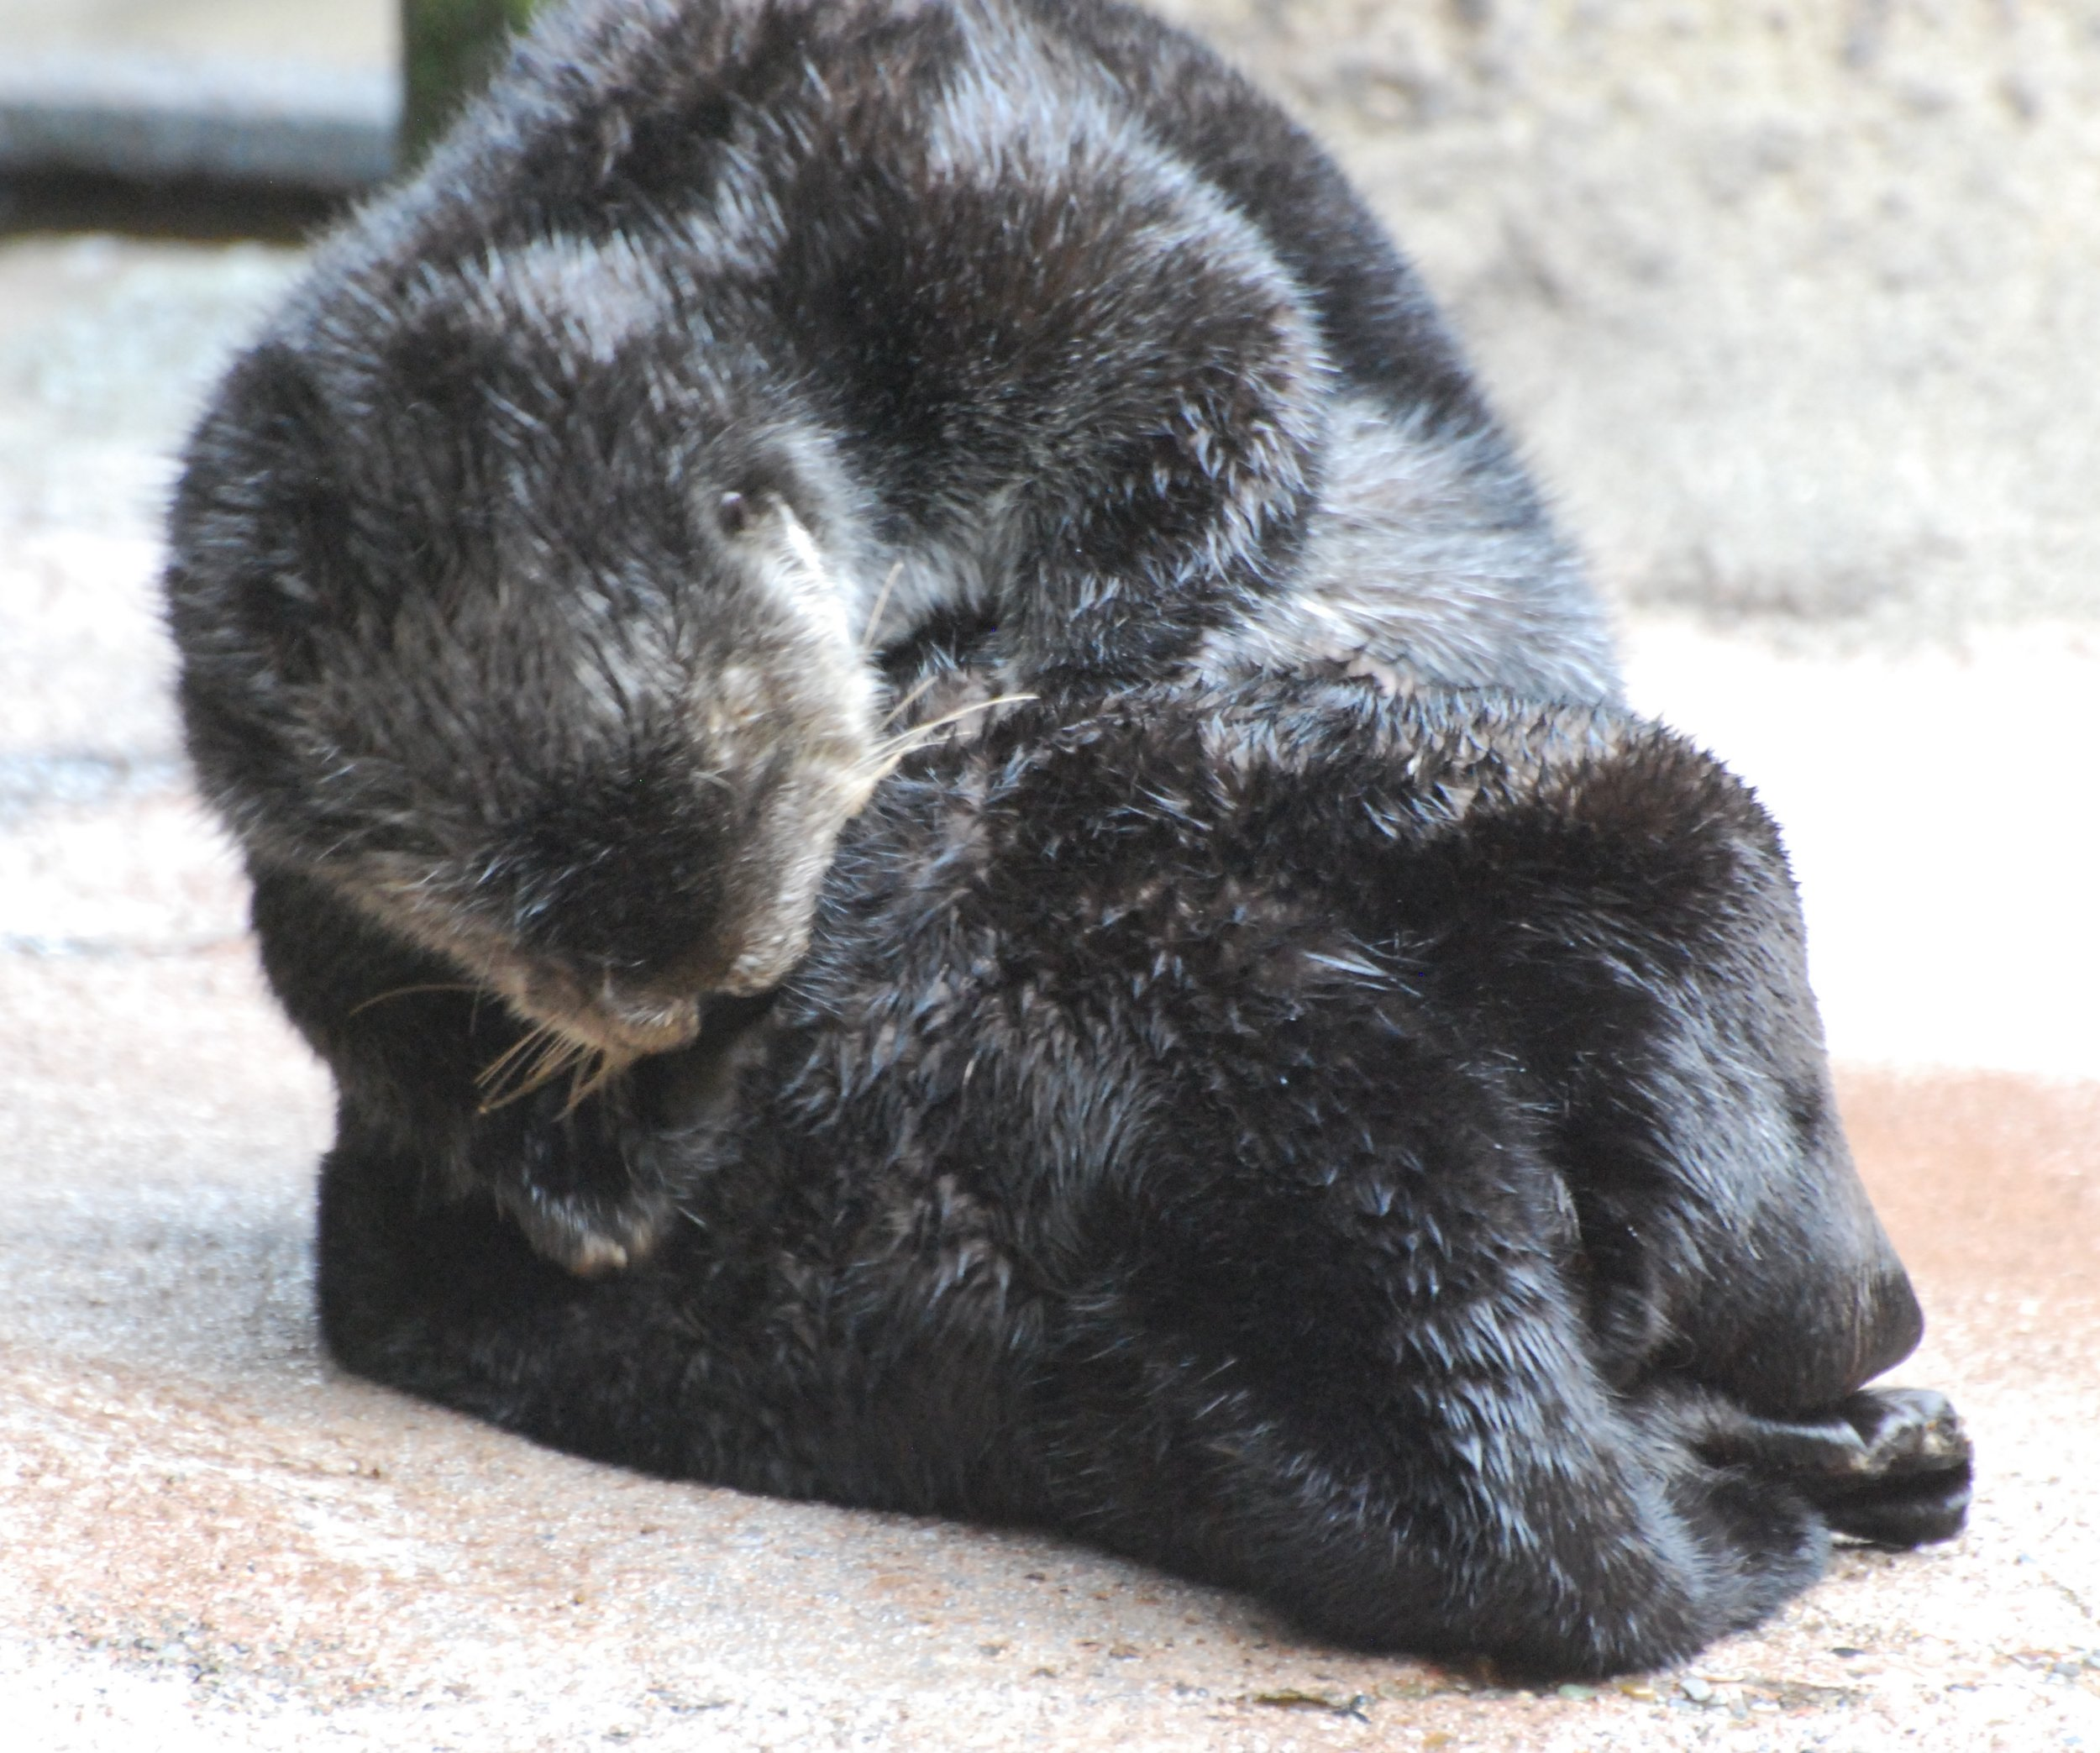 Sea Otter Has an On-Land Grooming Session